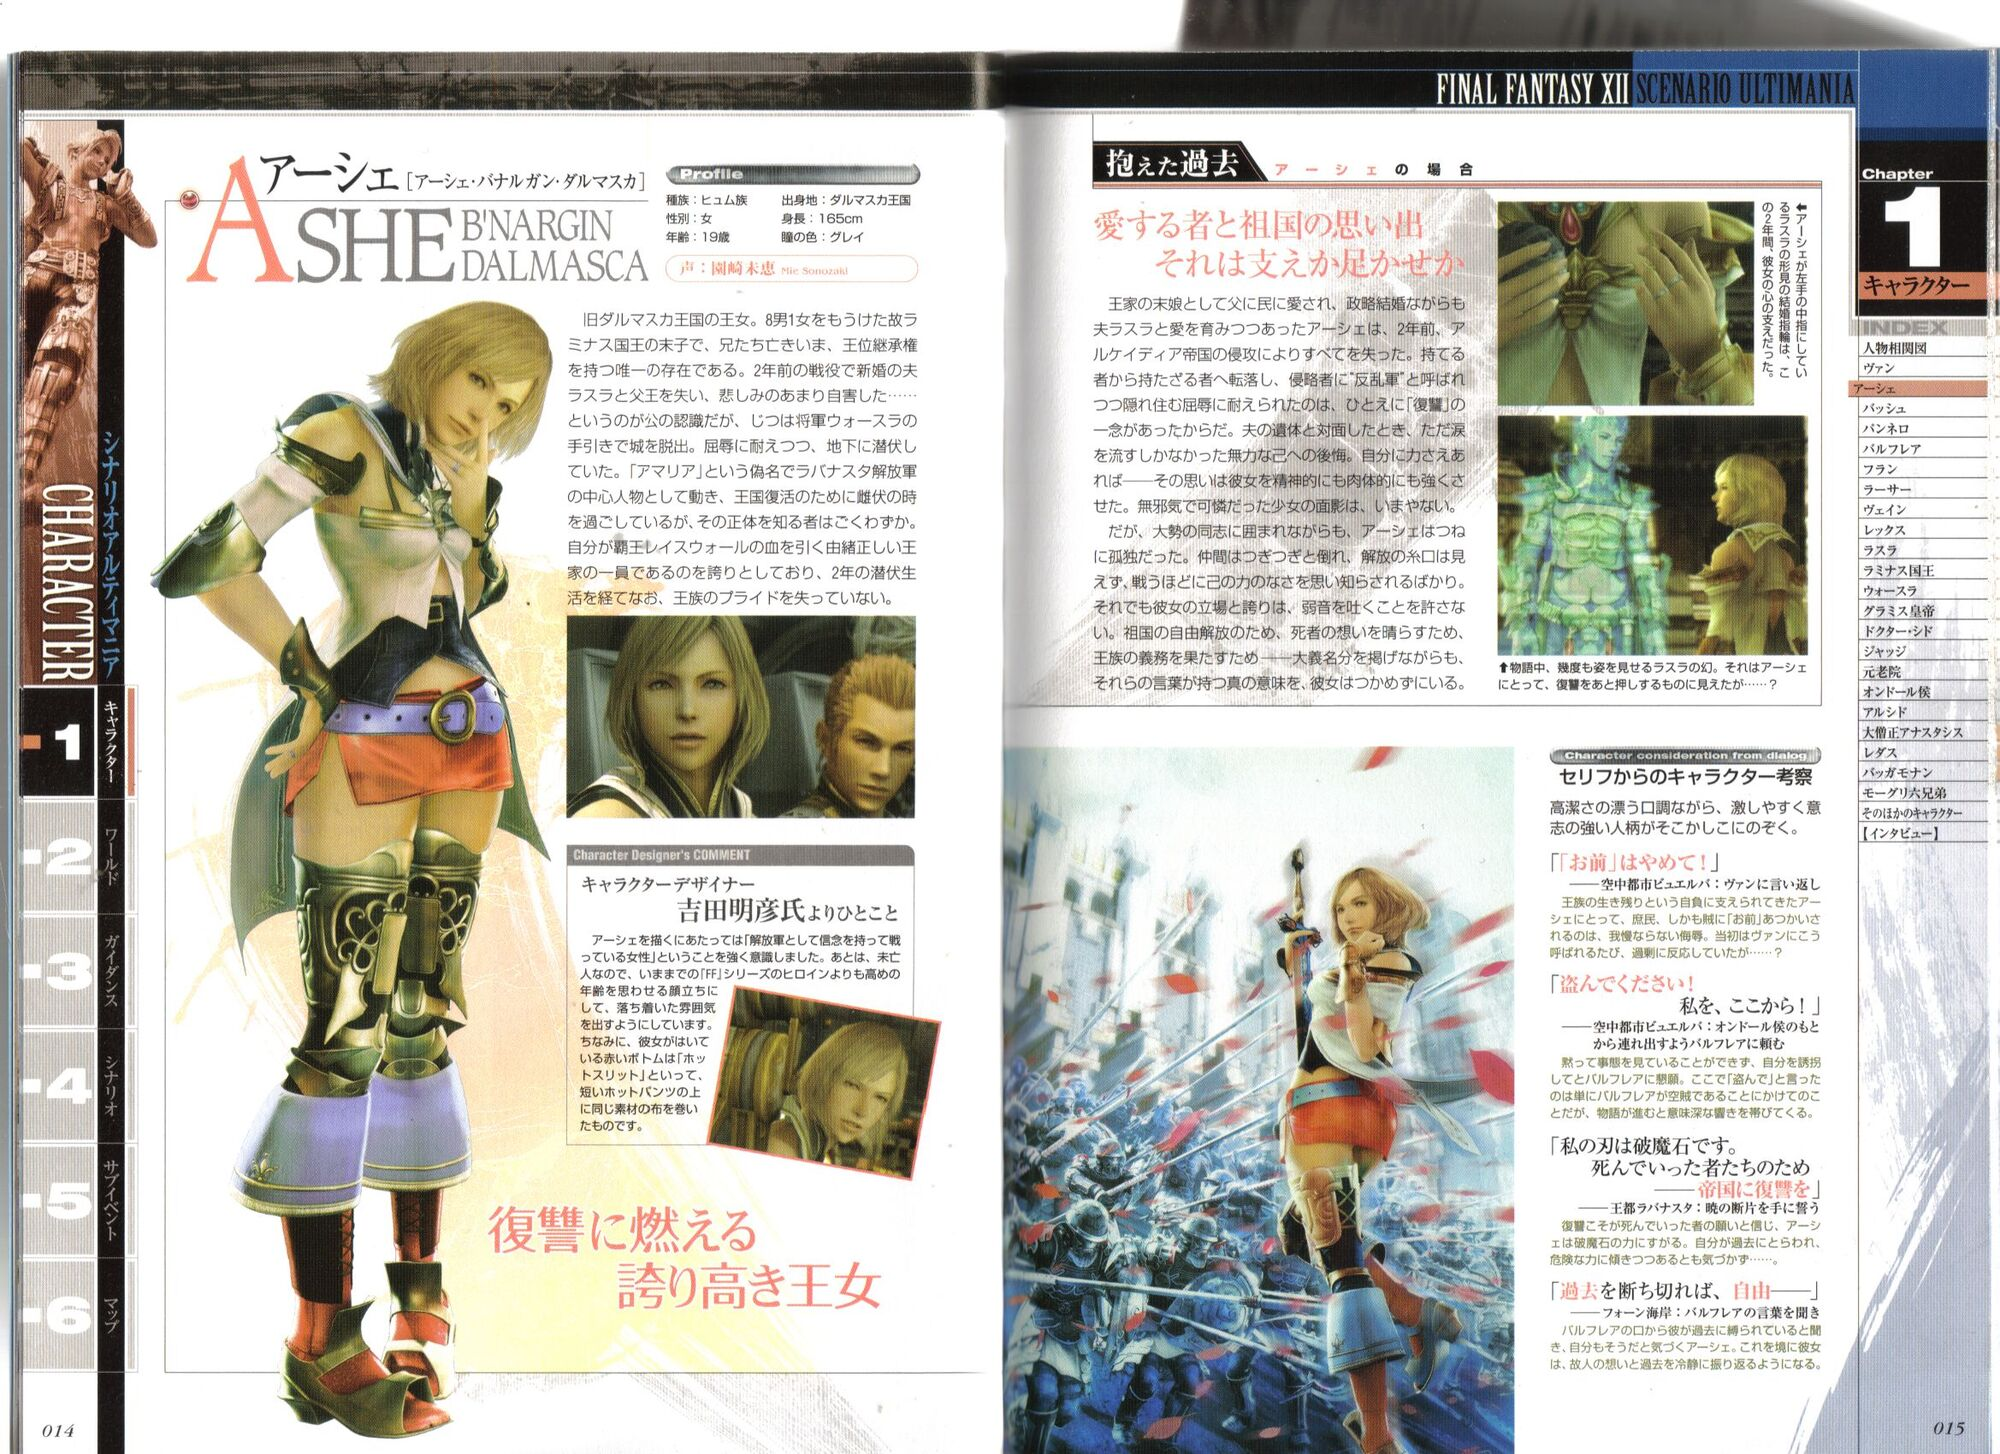 Strategy pdf official final fantasy xii guide